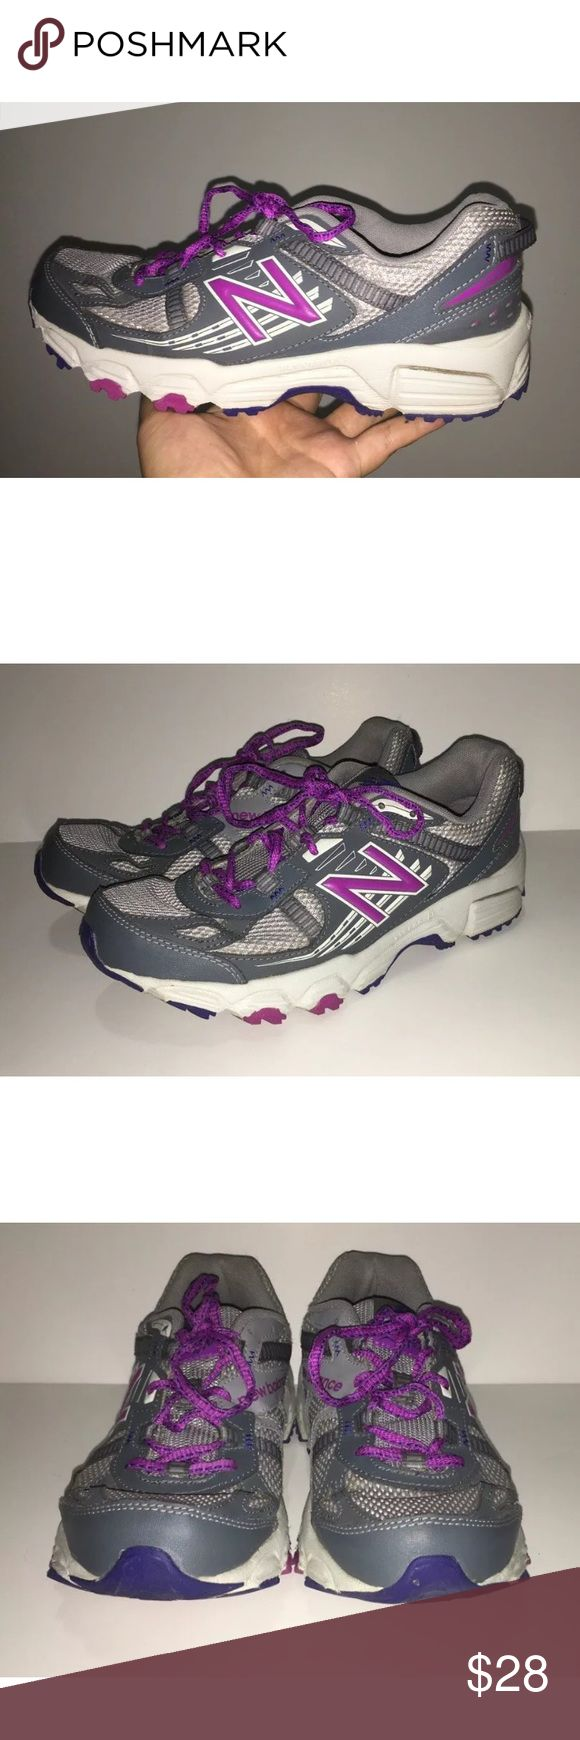 New Balance 410 v4 Trail Running Womens 8.5 Creasing SHOWN IN PHOTOS 4&7. XLT Footbed 410 v4 Trail Running Lace Up Gray Purple Shoes Womens size 8.5 New Balance Shoes Athletic Shoes